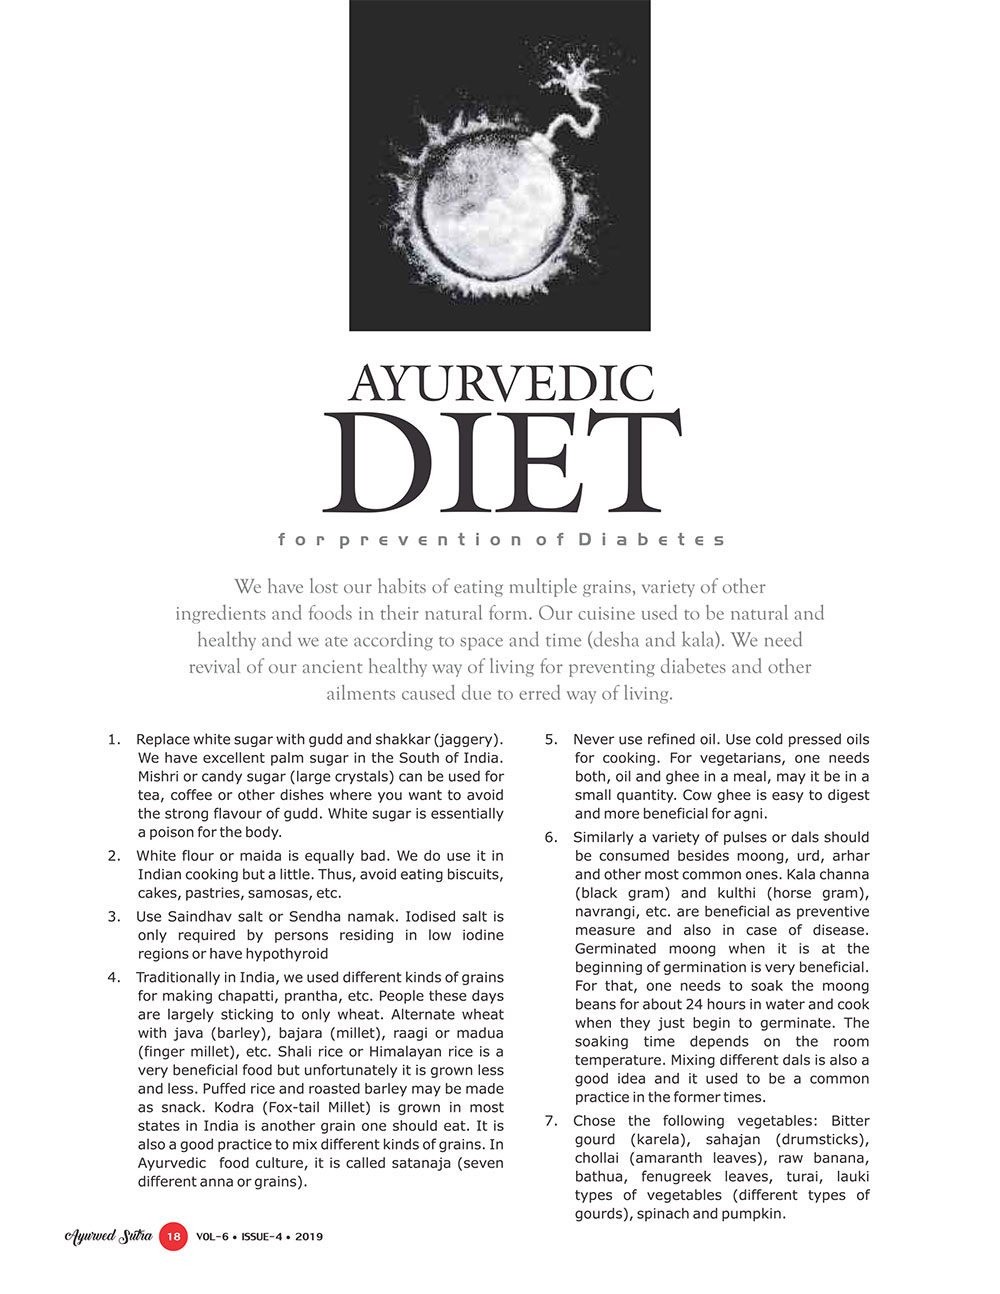 Ayurvedsutra Vol 06 issue 04 20 - Ayurvedic Diet for prevention of Diabetes